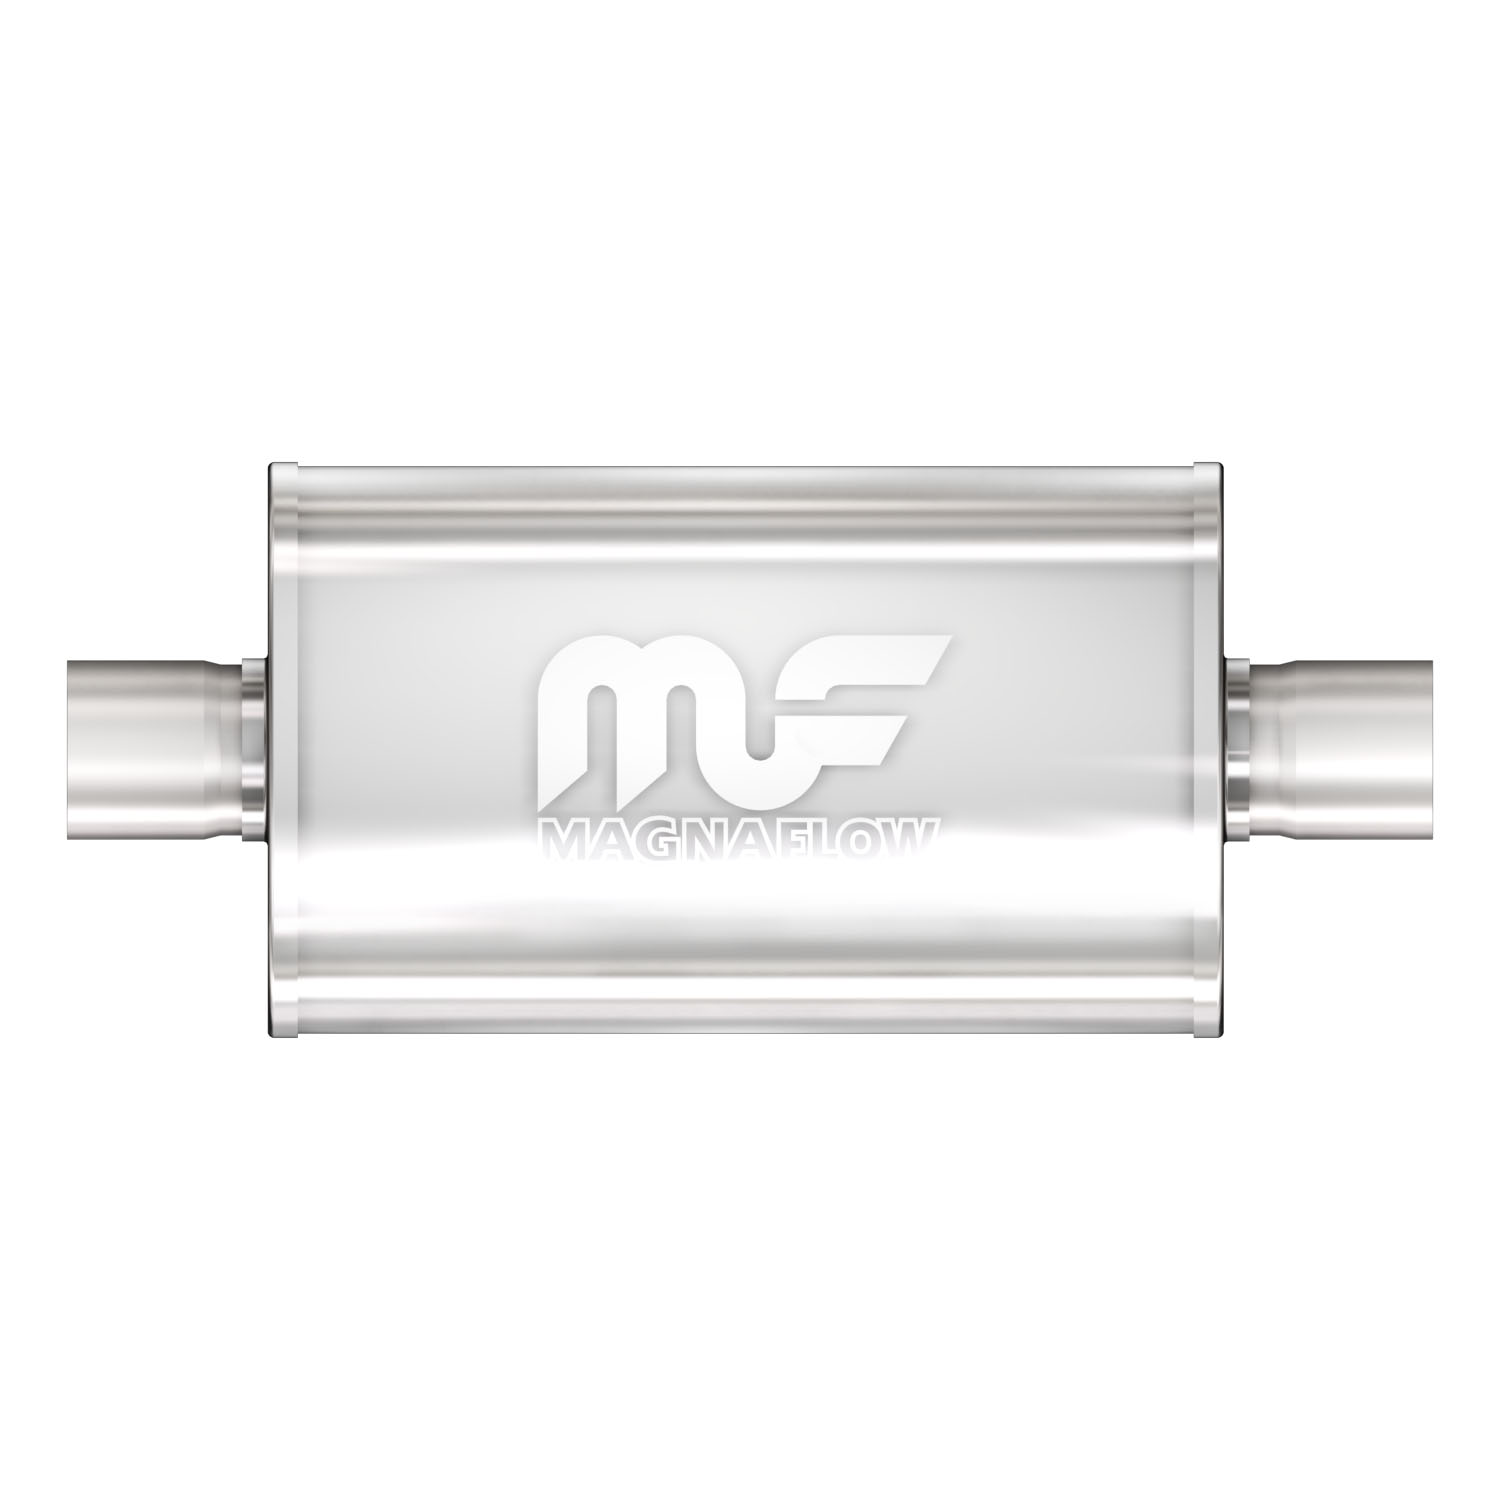 12219 Magnaflow Performance Exhaust Muffler 5 Inch x 8 Inch Oval